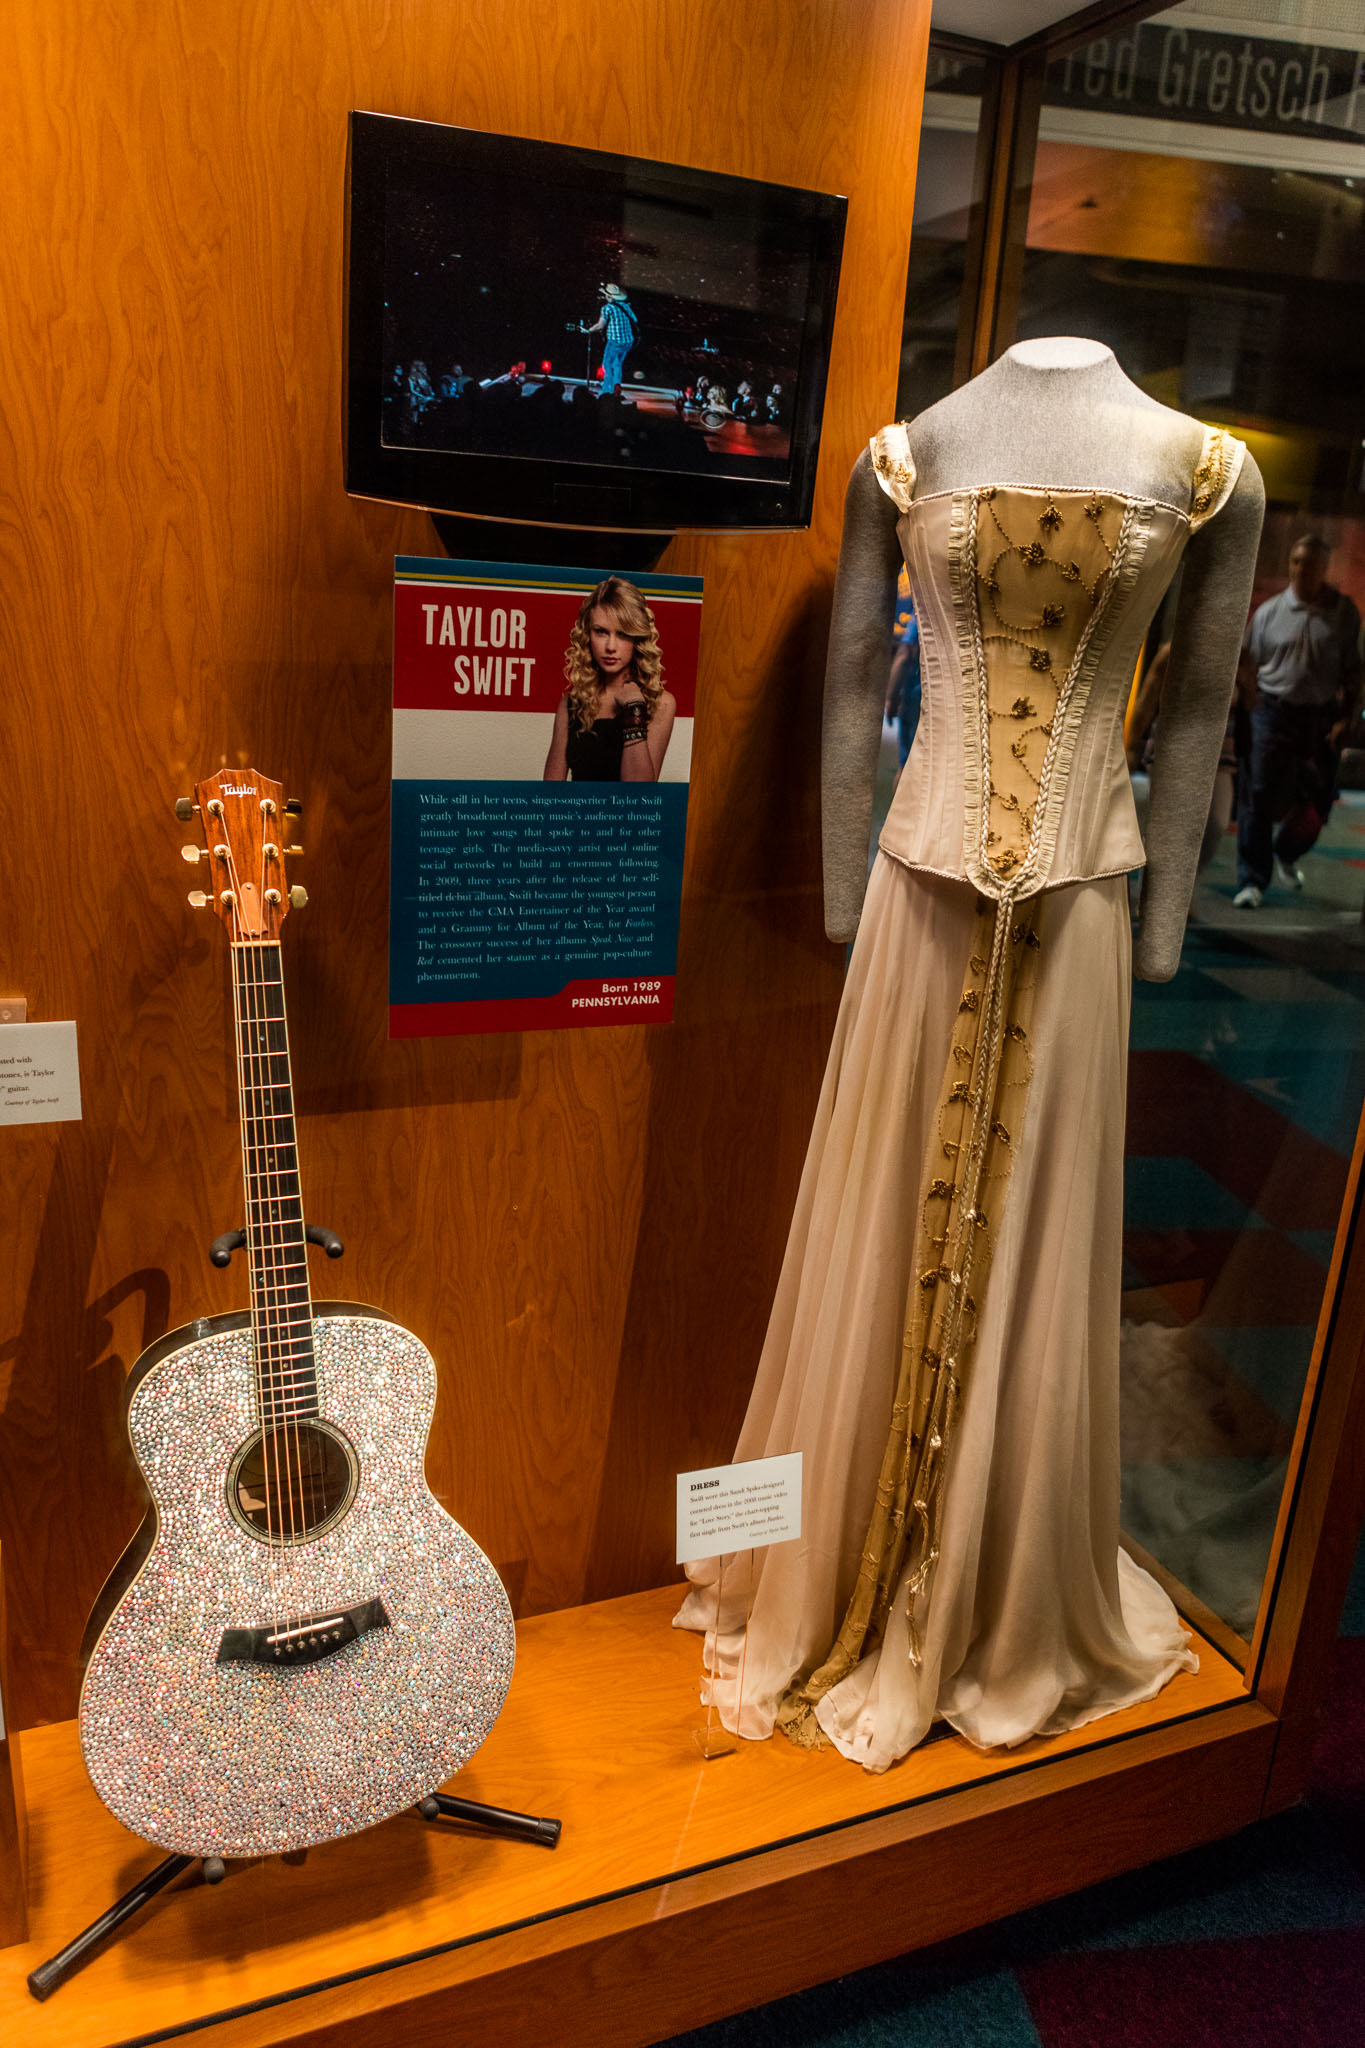 Guitar and Wardrobe of Taylor Swift at CMHOF